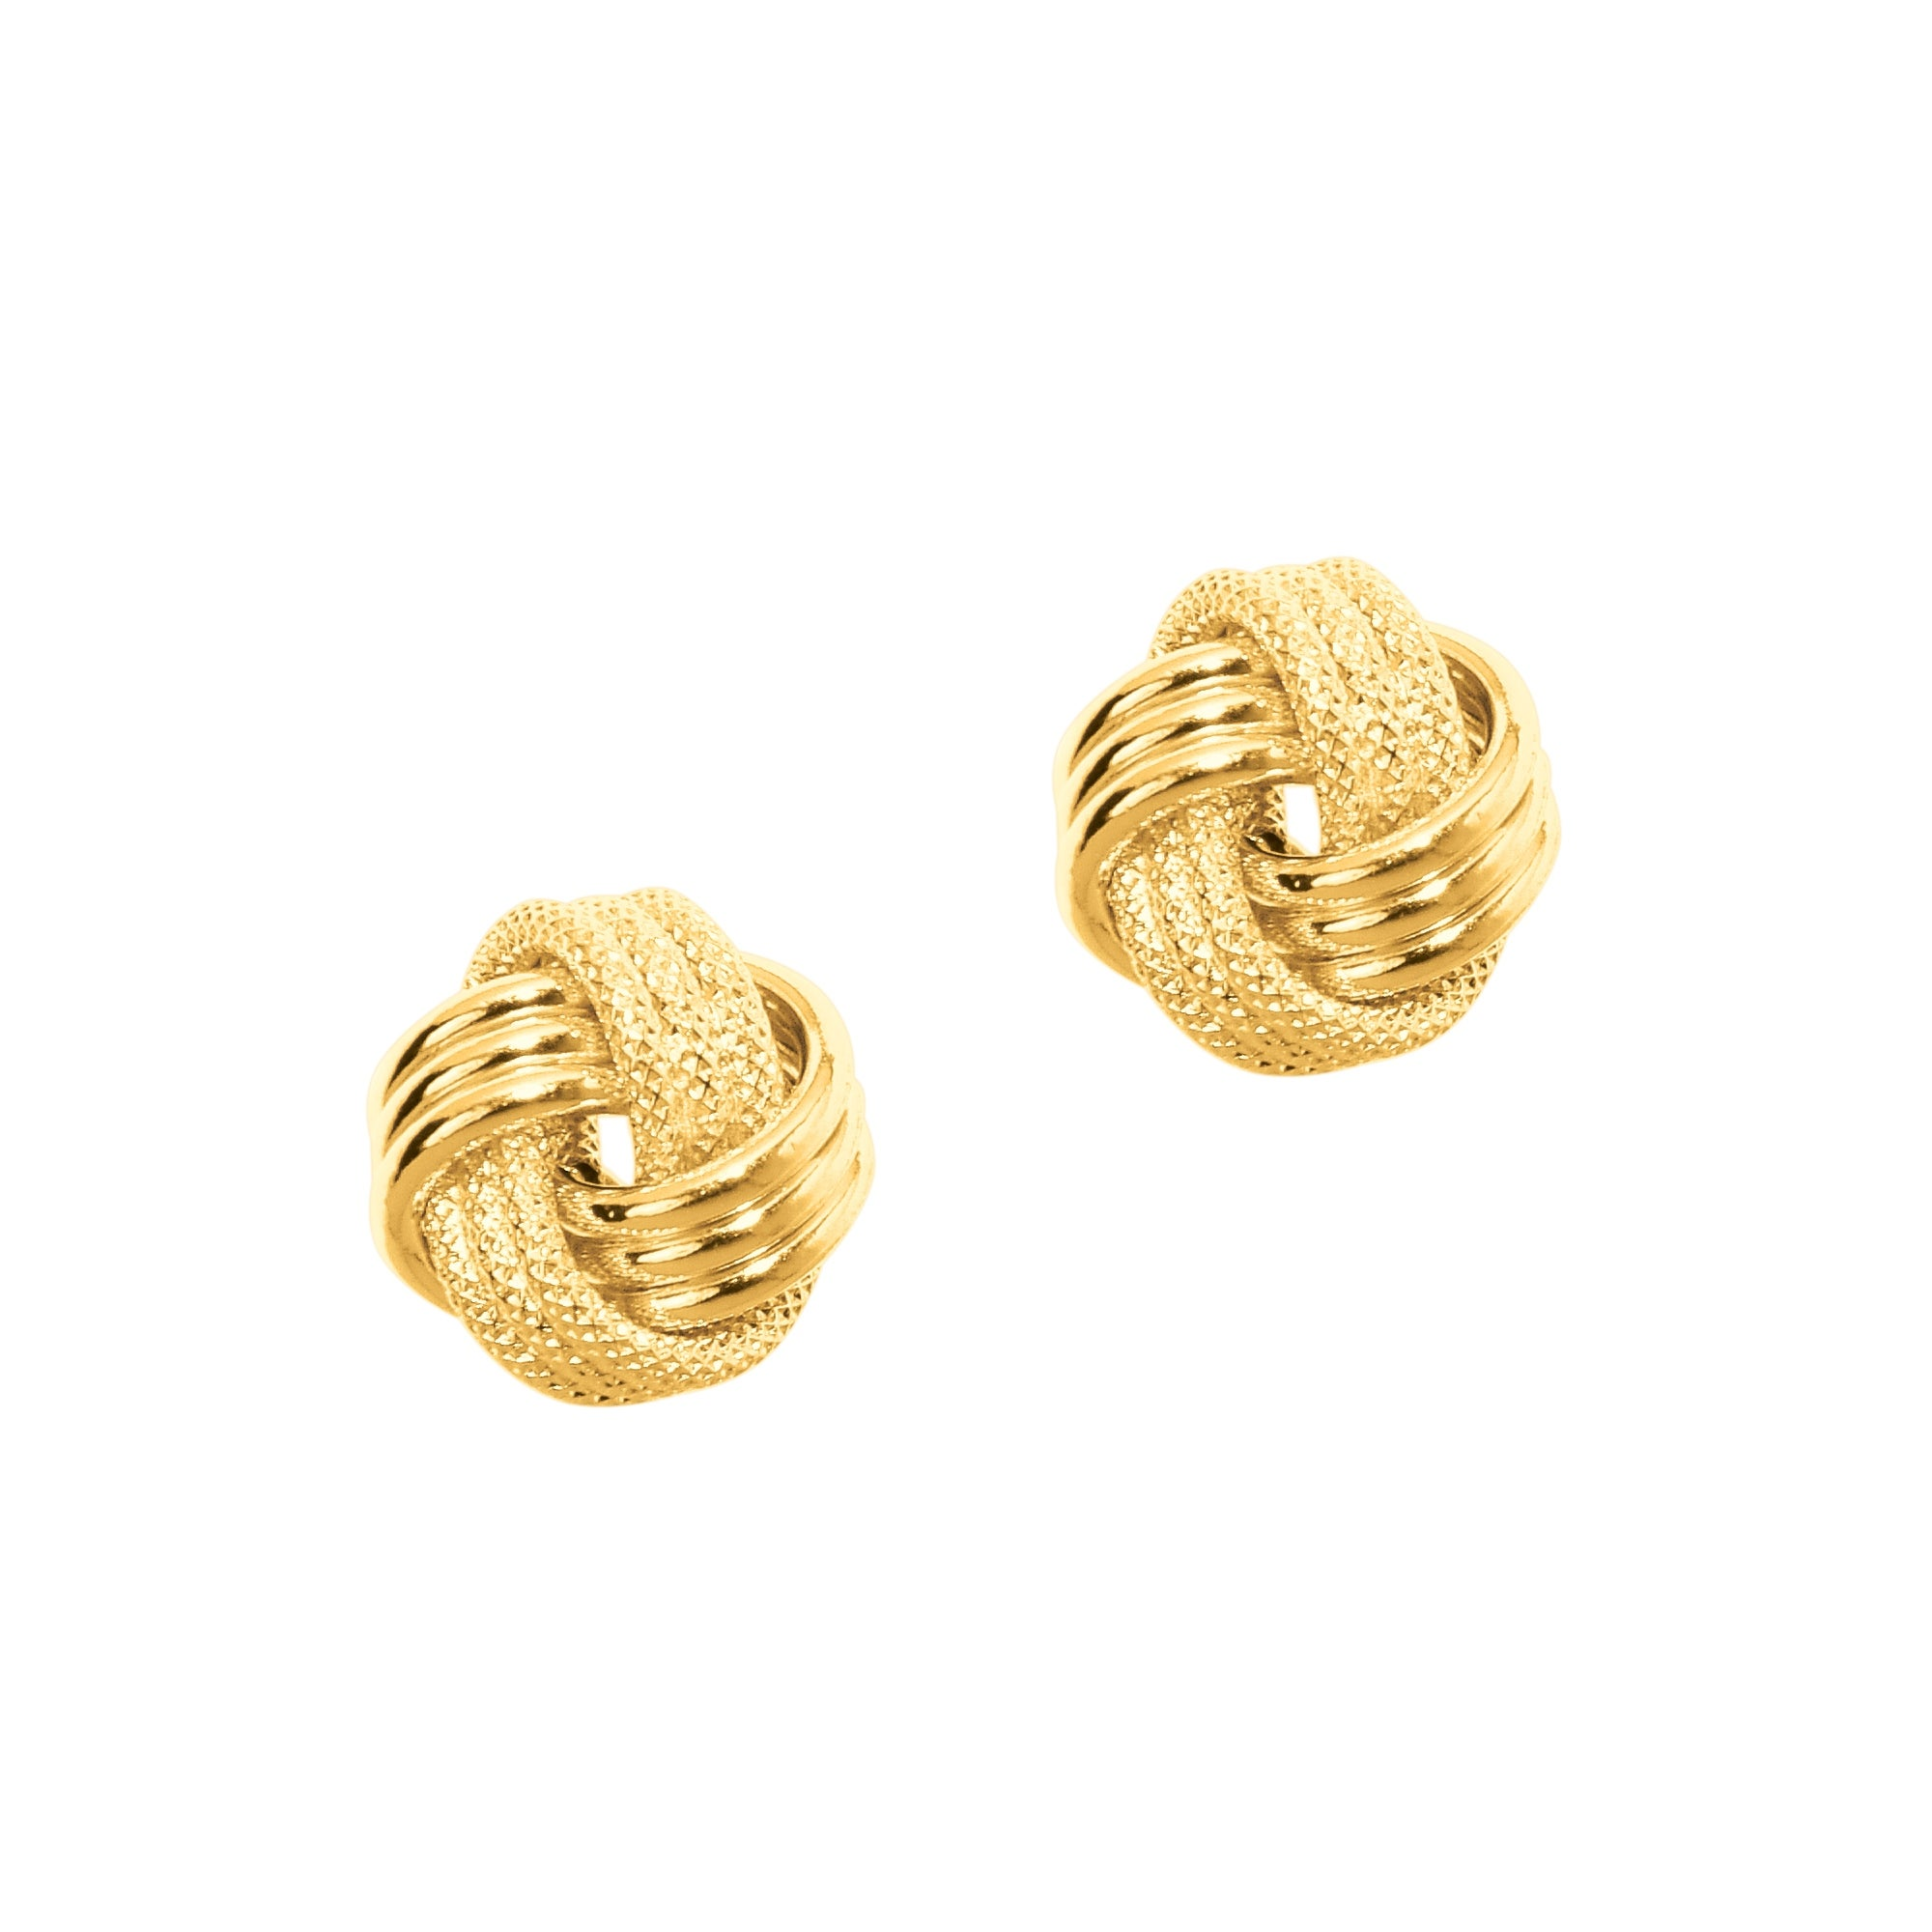 14k Yellow Gold Love Knot Earrings Designer Style High Polished Studs 9mm